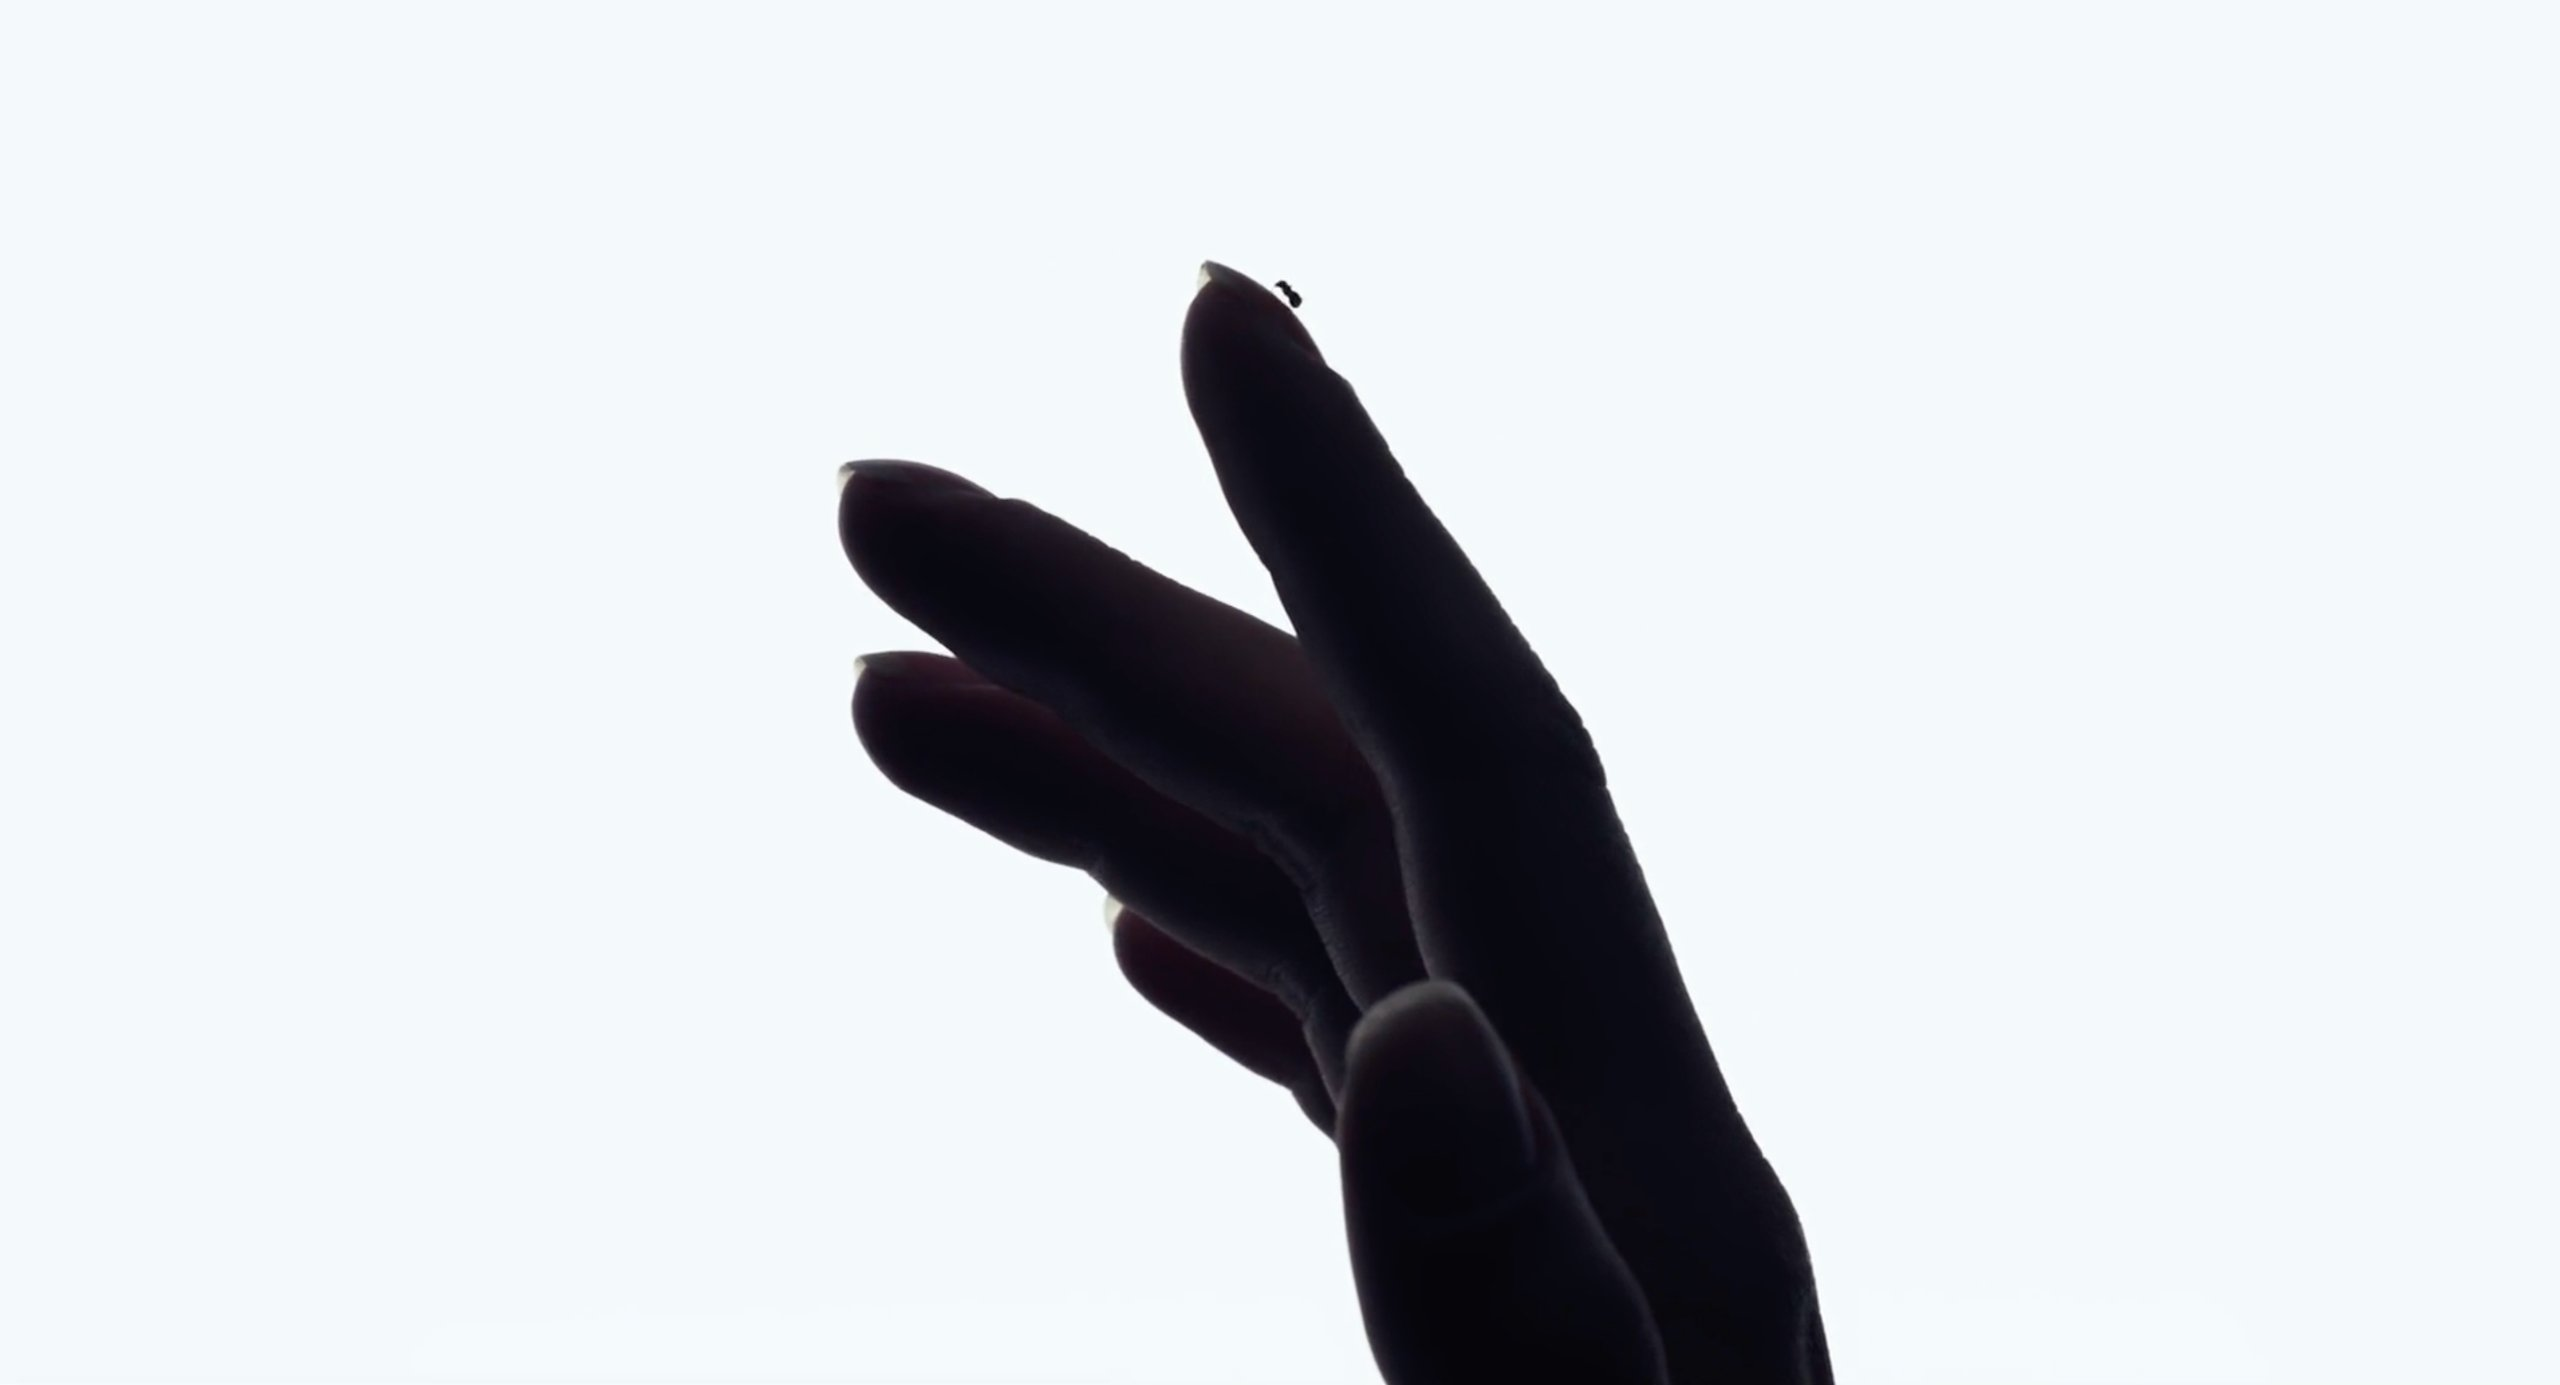 An ant crawls on Scarlett Johansson's hand at the beginning of Under the Skin